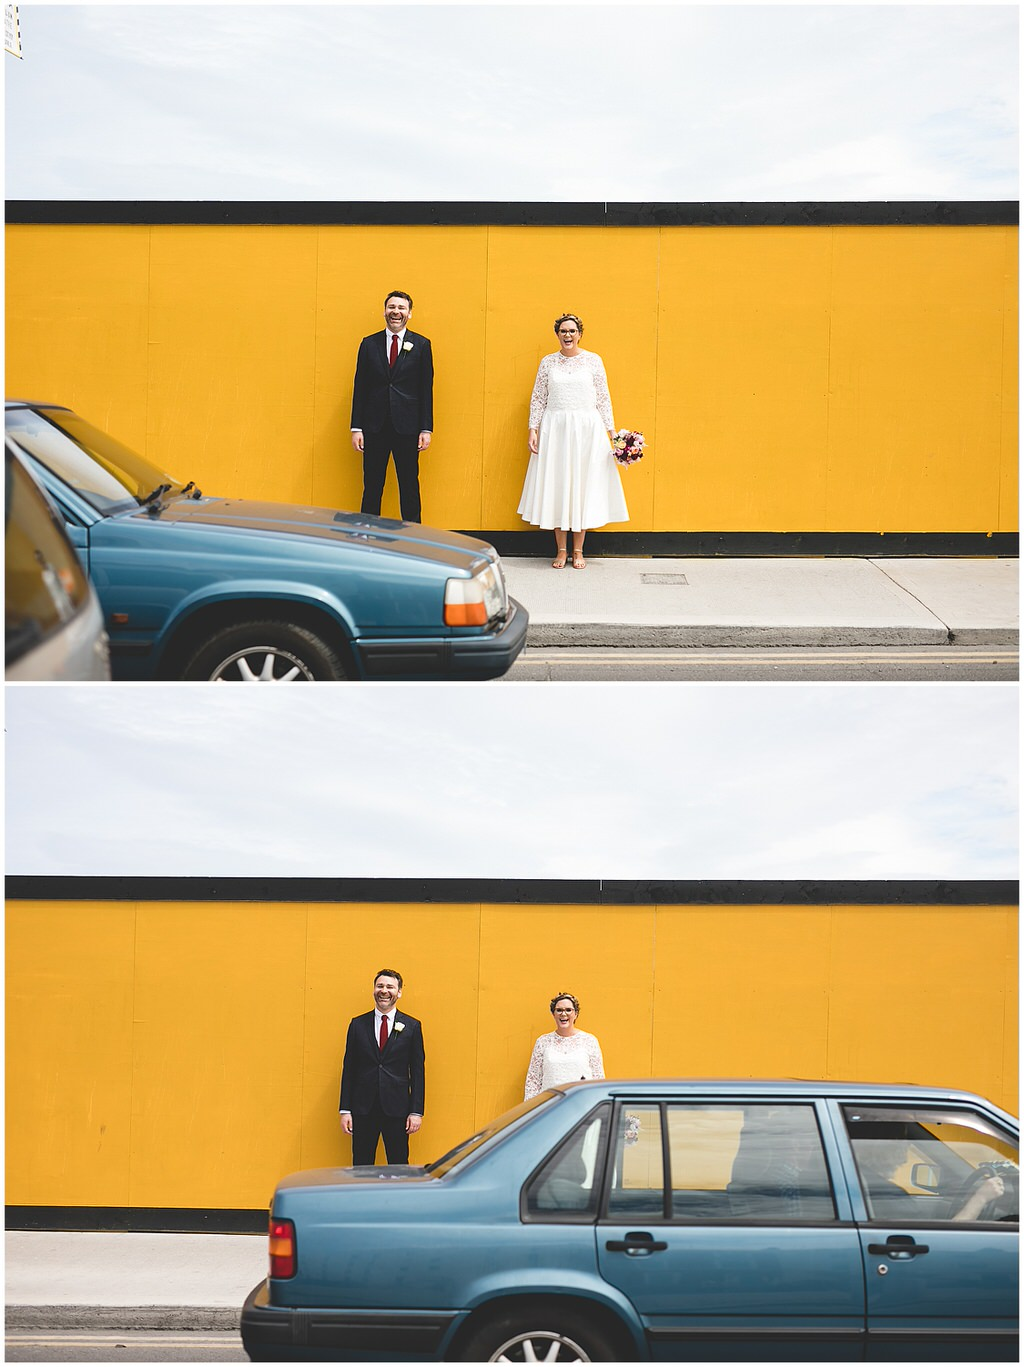 Photobombed by passing cars